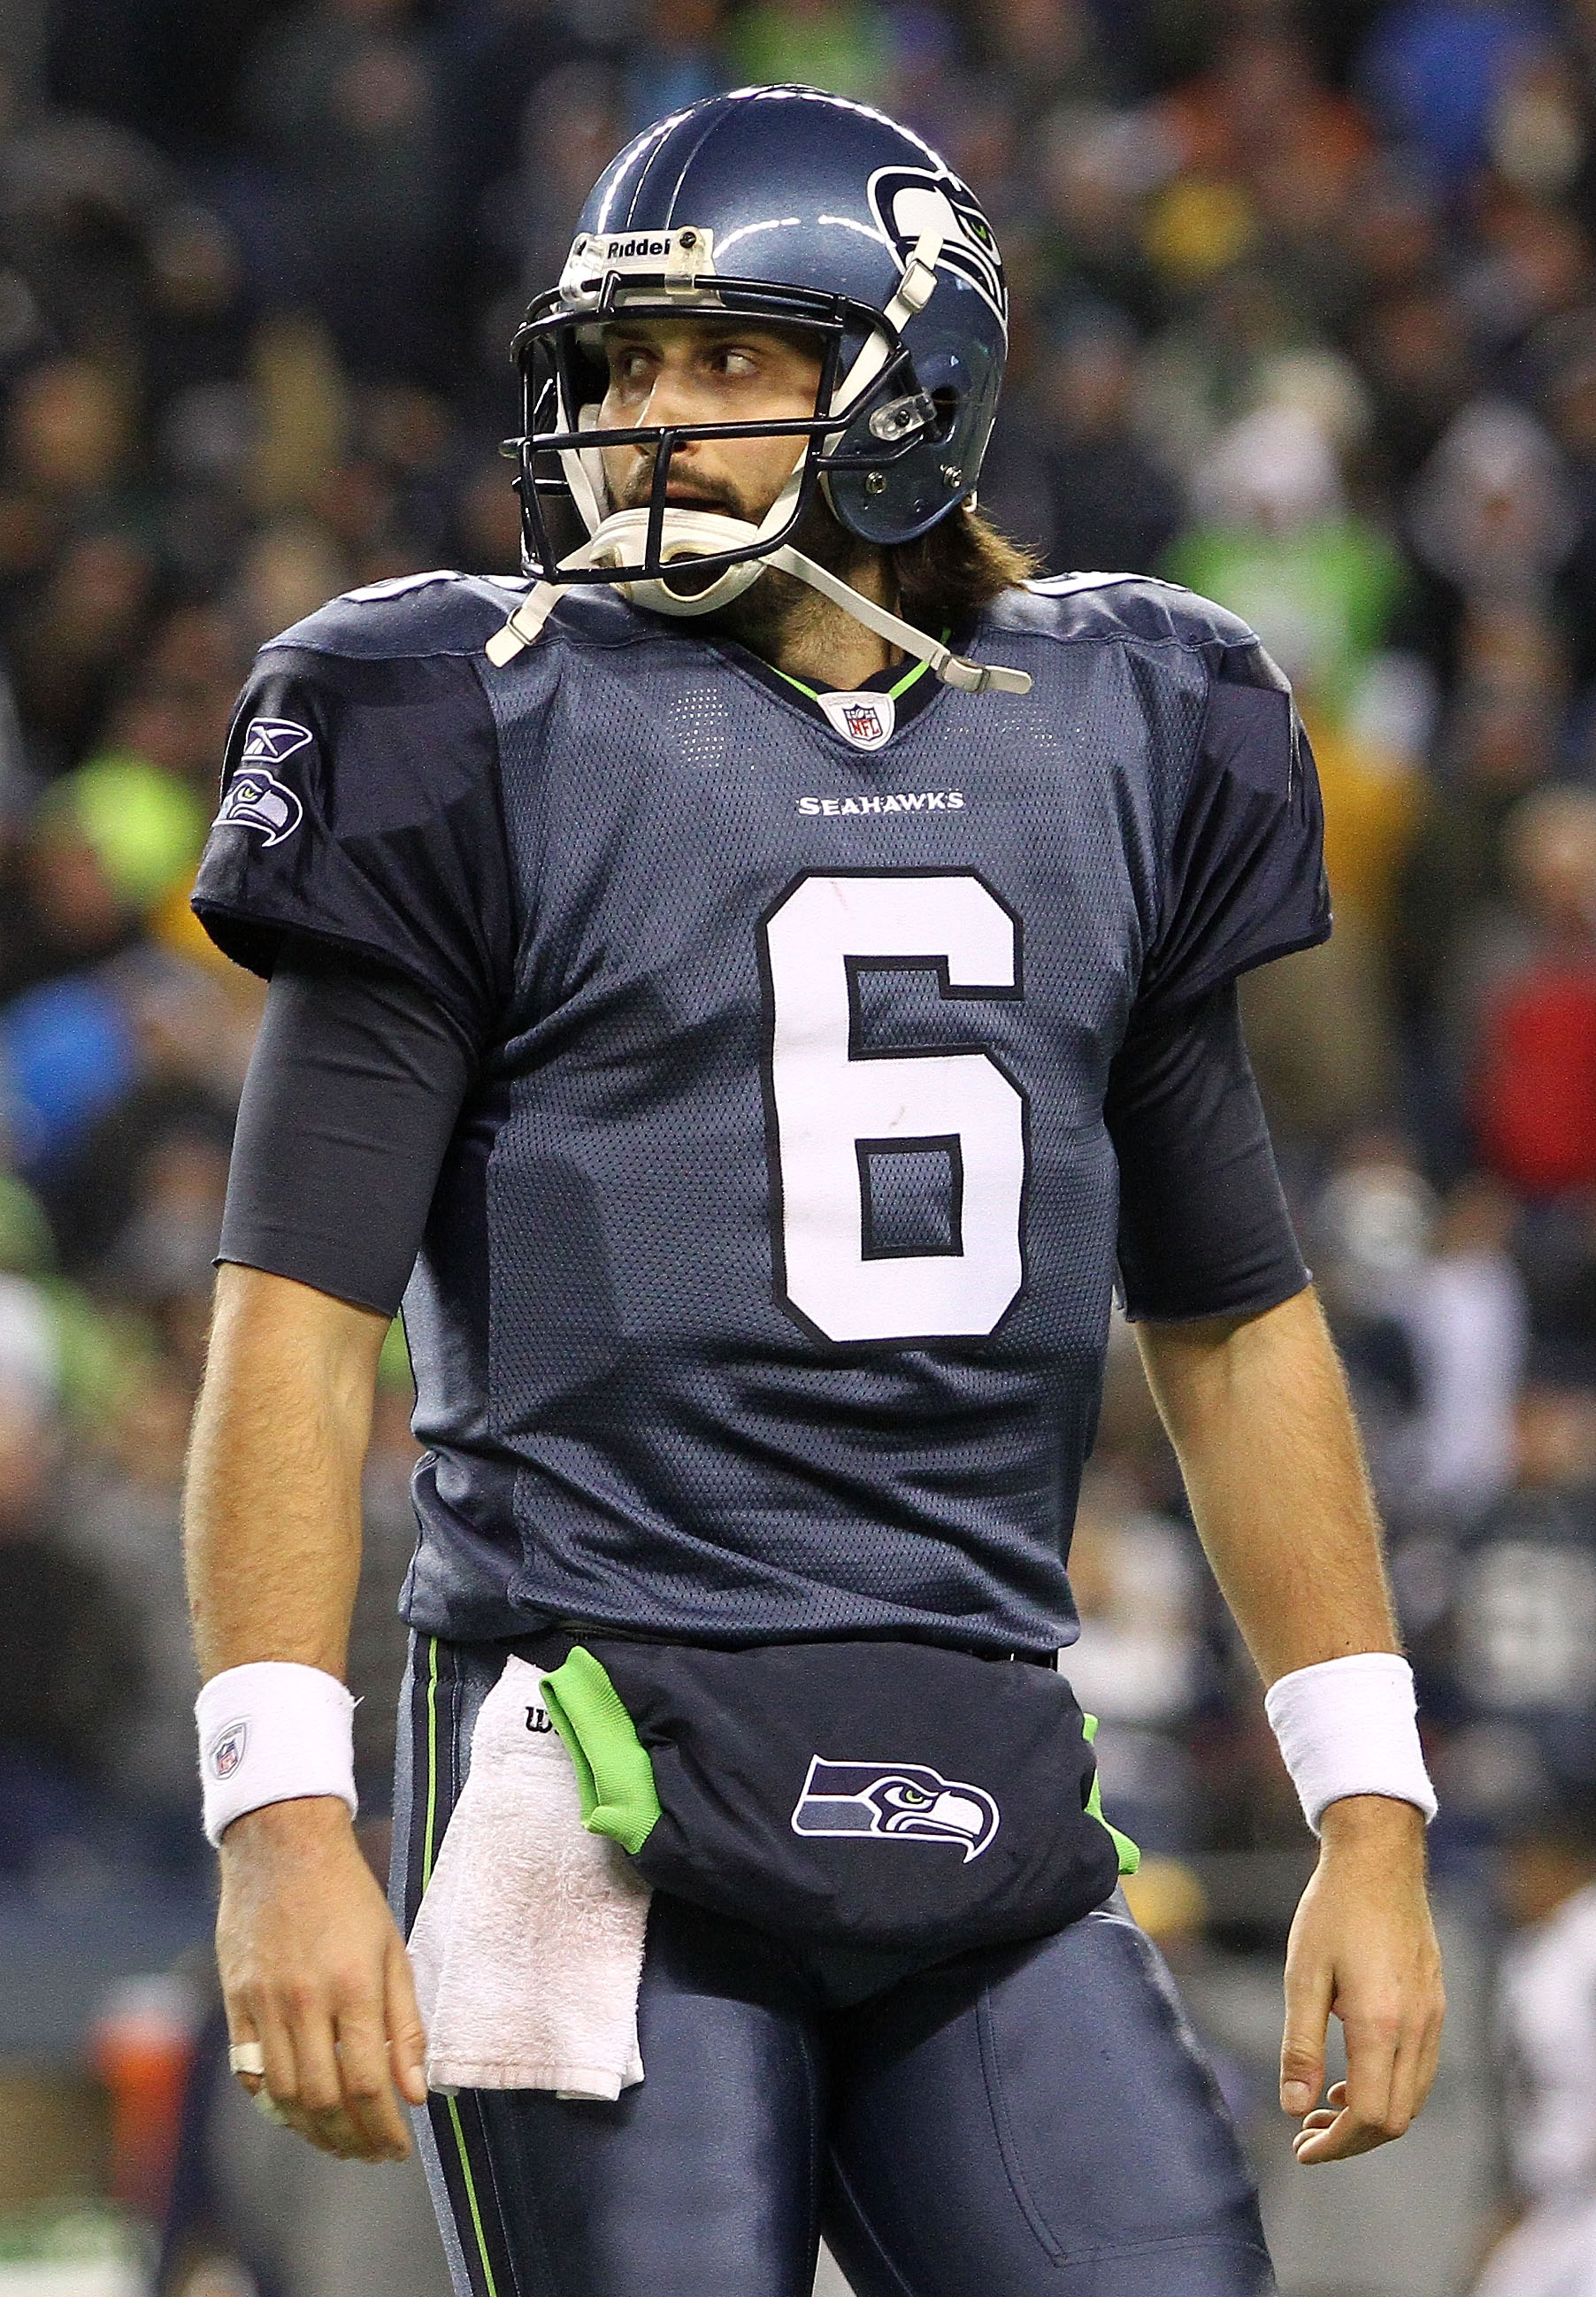 SEATTLE, WA - JANUARY 02:  Quarterback Charlie Whitehurst #6 of the Seattle Seahawks stands on the field during their game against the St. Louis Rams at Qwest Field on January 2, 2011 in Seattle, Washington.  (Photo by Otto Greule Jr/Getty Images)